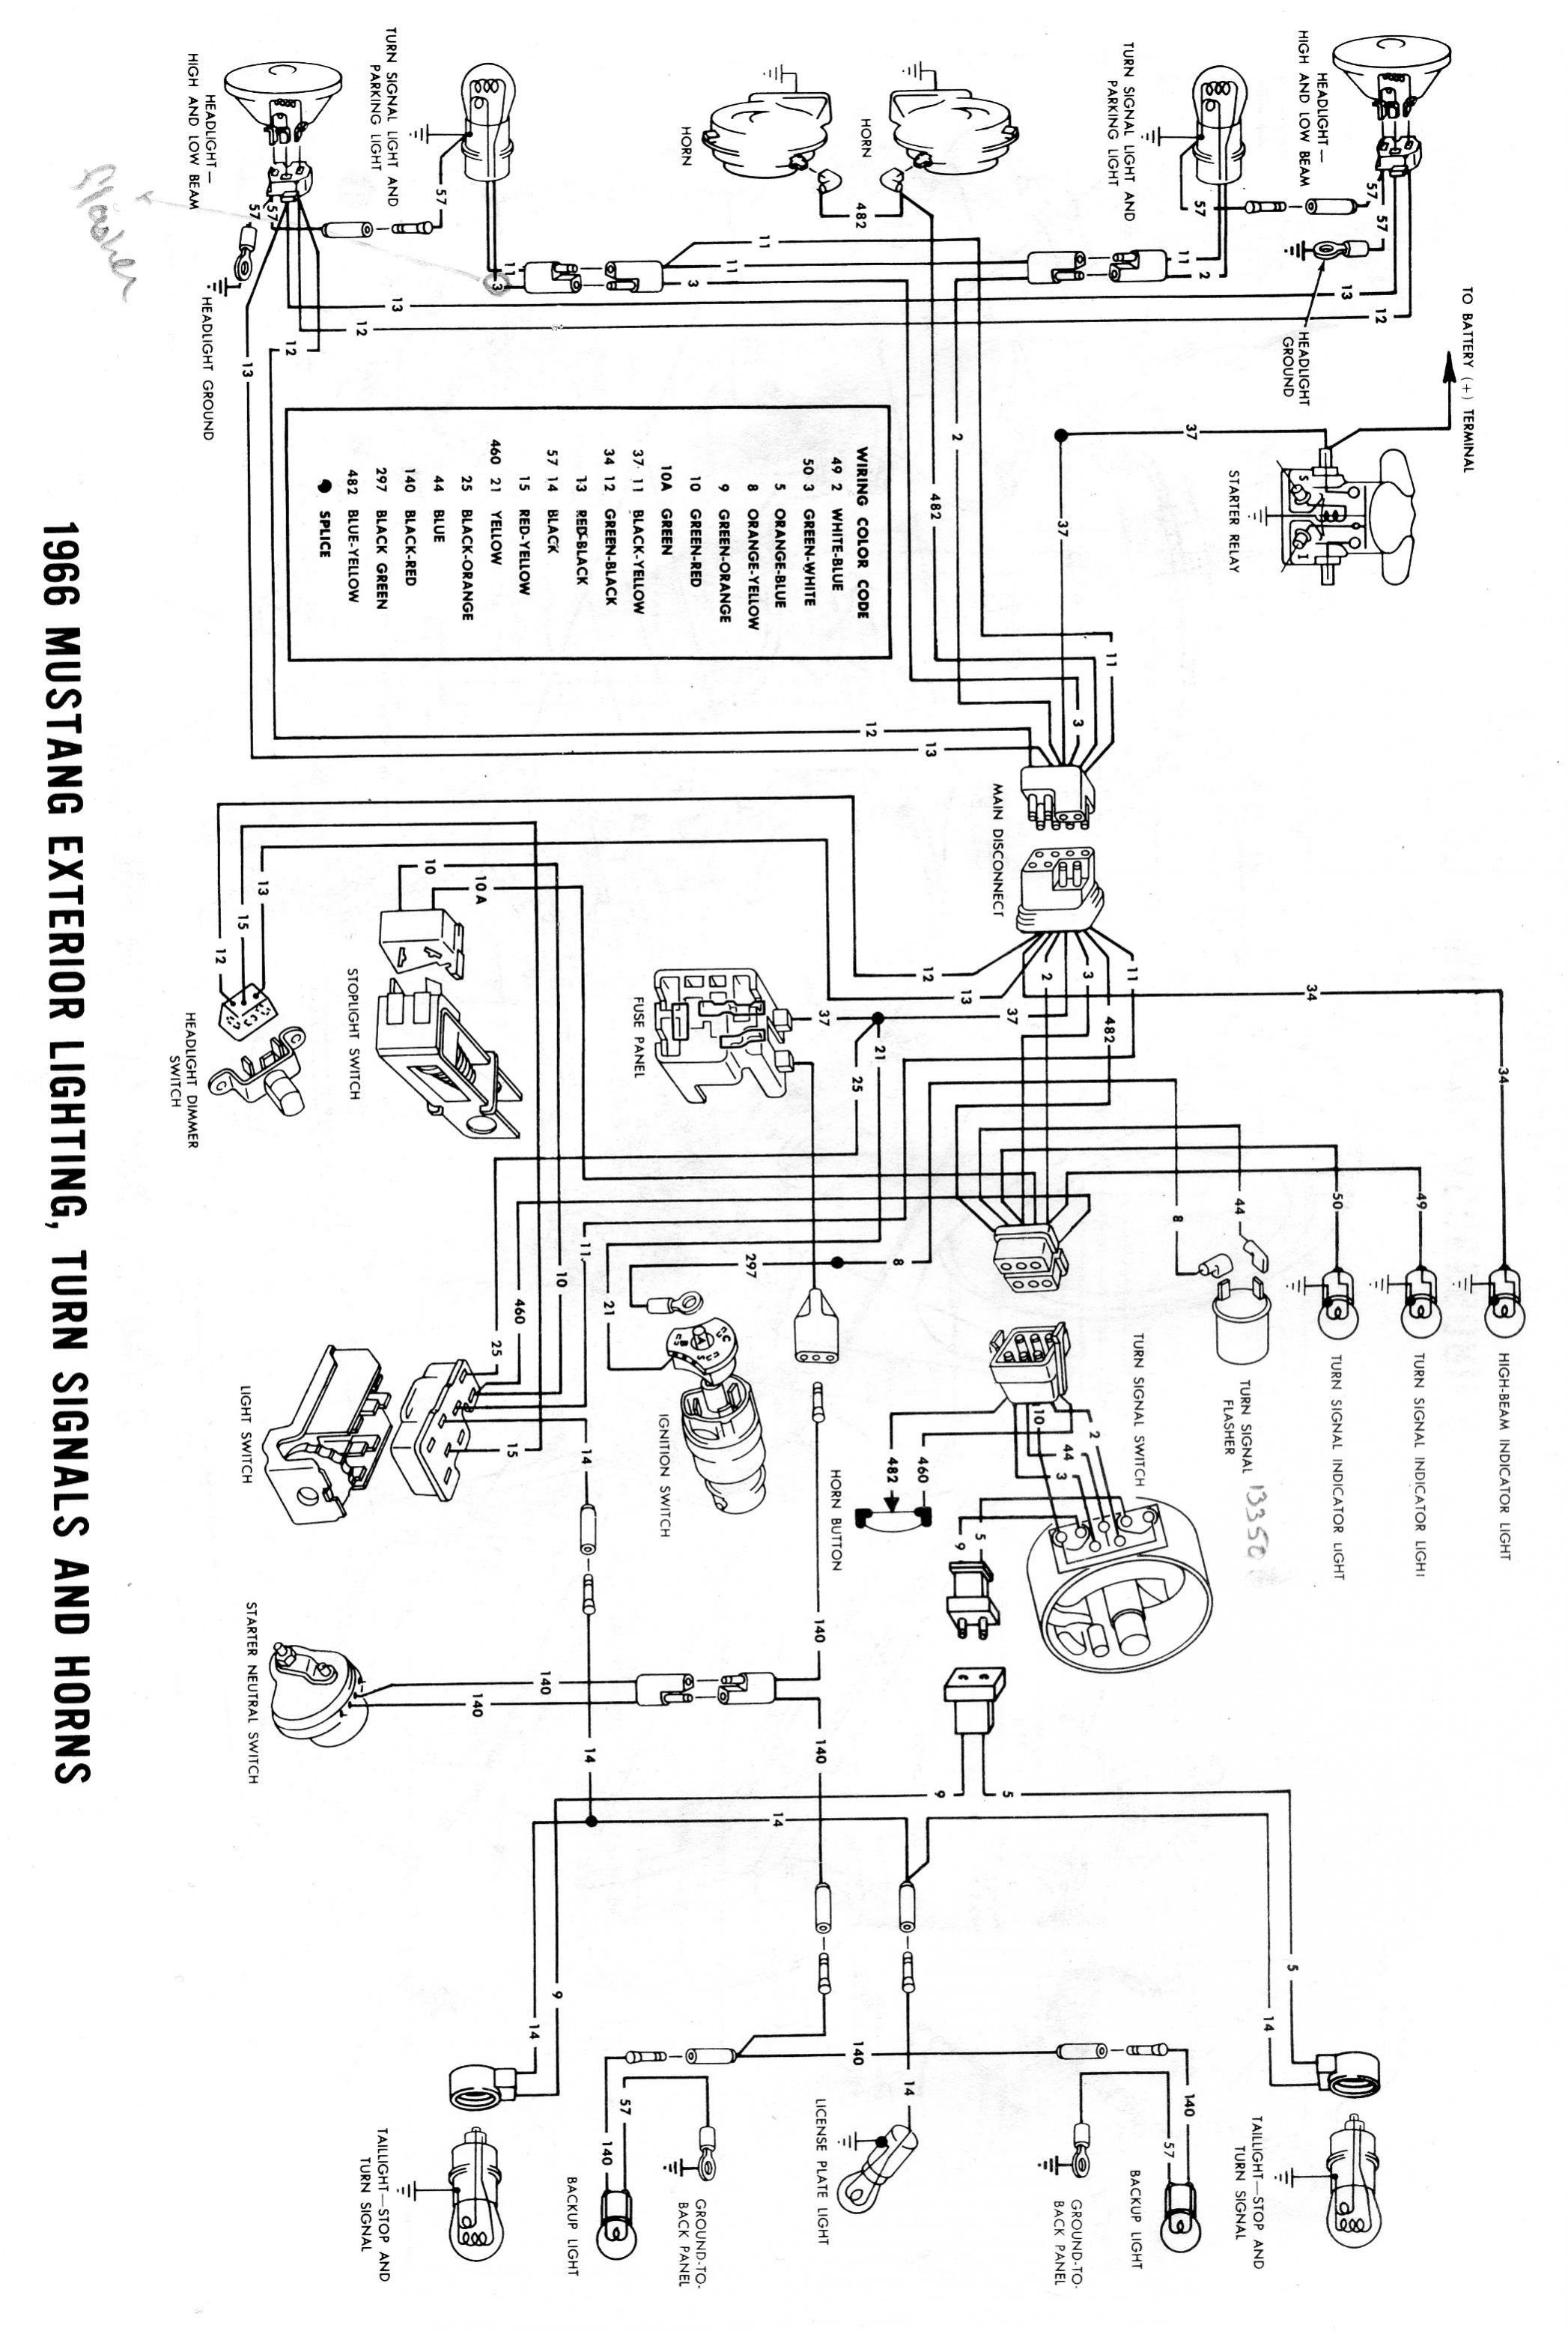 3 Wire Flasher Diagram